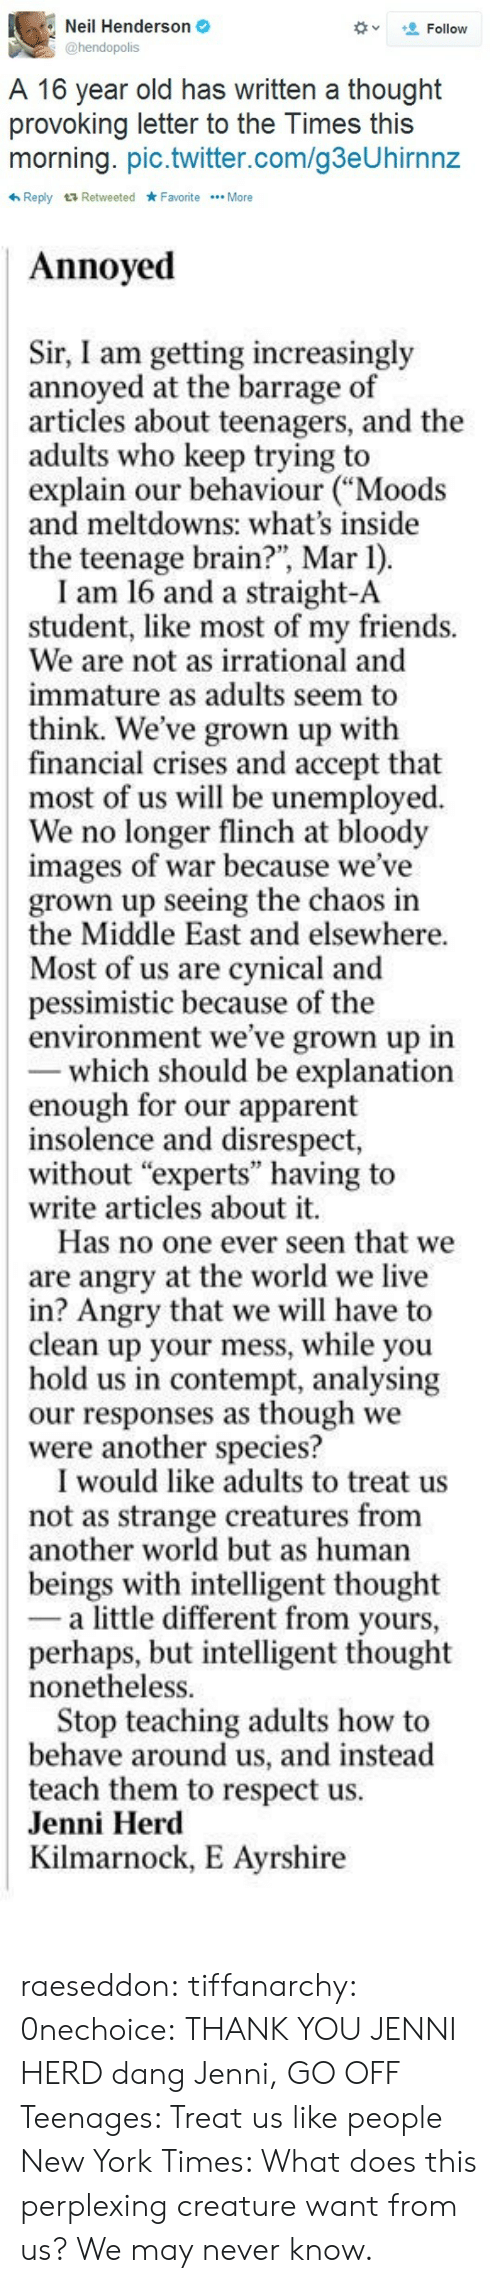 "As Though: Neil Henderson  @hendopolis  Follow  A 16 year old has written a thought  provoking letter to the Times this  morning. pic.twitter.com/g3eUhirnnz  わReply Retweeted ★Favorite More   Annoyed  Sir, I am getting increasingly  annoyed at the barrage of  articles about teenagers, and the  adults who keep trying to  explain our behaviour ""Moods  and meltdowns: what's inside  the teenage brain?, Mar 1)  I am 16 and a straight-A  student, like most of my friends.  We are not as irrational and  immature as adults seem to  think. We've grown up with  financial crises and accept that  most of us will be unemployed  We no longer flinch at bloody  images of war because we've  grown up seeing the chaos in  the Middle East and elsewhere  Most of us are cynical and  pessimistic because of the  environment we've grown up in  which should be explanation  enough for our apparent  insolence and disrespect,  without ""experts"" having to  write articles about it.  Has no one ever seen that we  are angry at the world we live  in? Angry that we will have to  clean up your mess, while you  hold us in contempt, analysing  our responses as though we  were another species?  I would like adults to treat us  not as strange creatures from  other world but as human  beings with intelligent thought  - a little different from yours,  perhaps, but intelligent thought  nonetheless  Stop teaching adults how to  behave around us, and instead  teach them to respect us  Jenni Herd  Kilmarnock, E Ayrshire raeseddon:  tiffanarchy:  0nechoice:  THANK YOU JENNI HERD   dang Jenni, GO OFF   Teenages: Treat us like people New York Times: What does this perplexing creature want from us? We may never know."